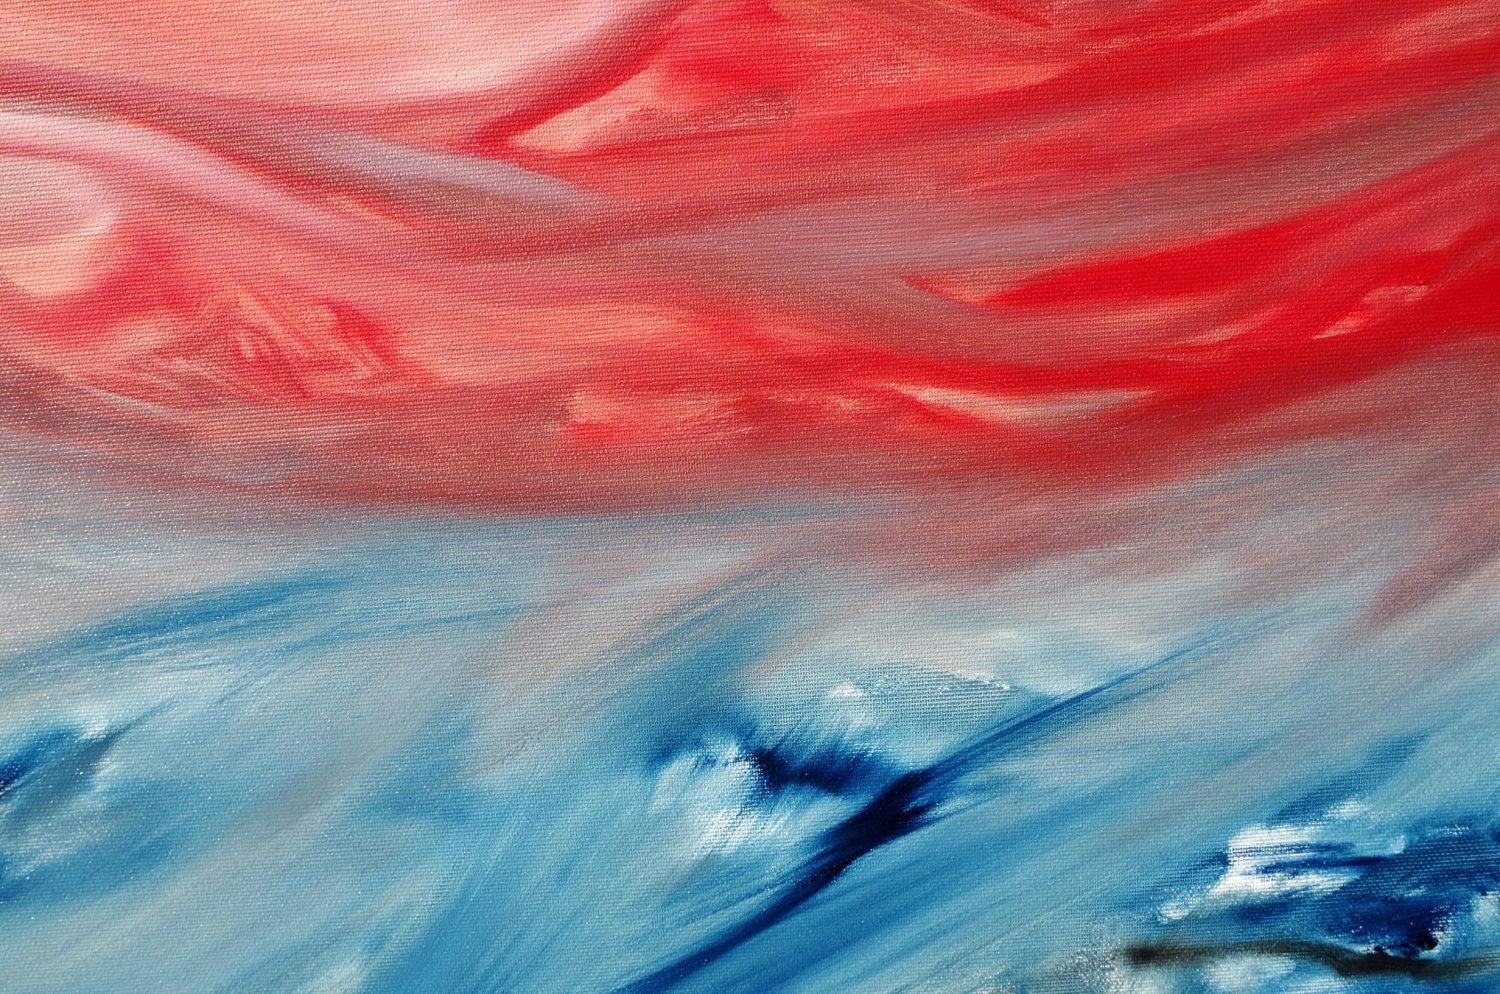 Red sunset on the sea 1 2017 80x80x4 olio dipinto originale astratto